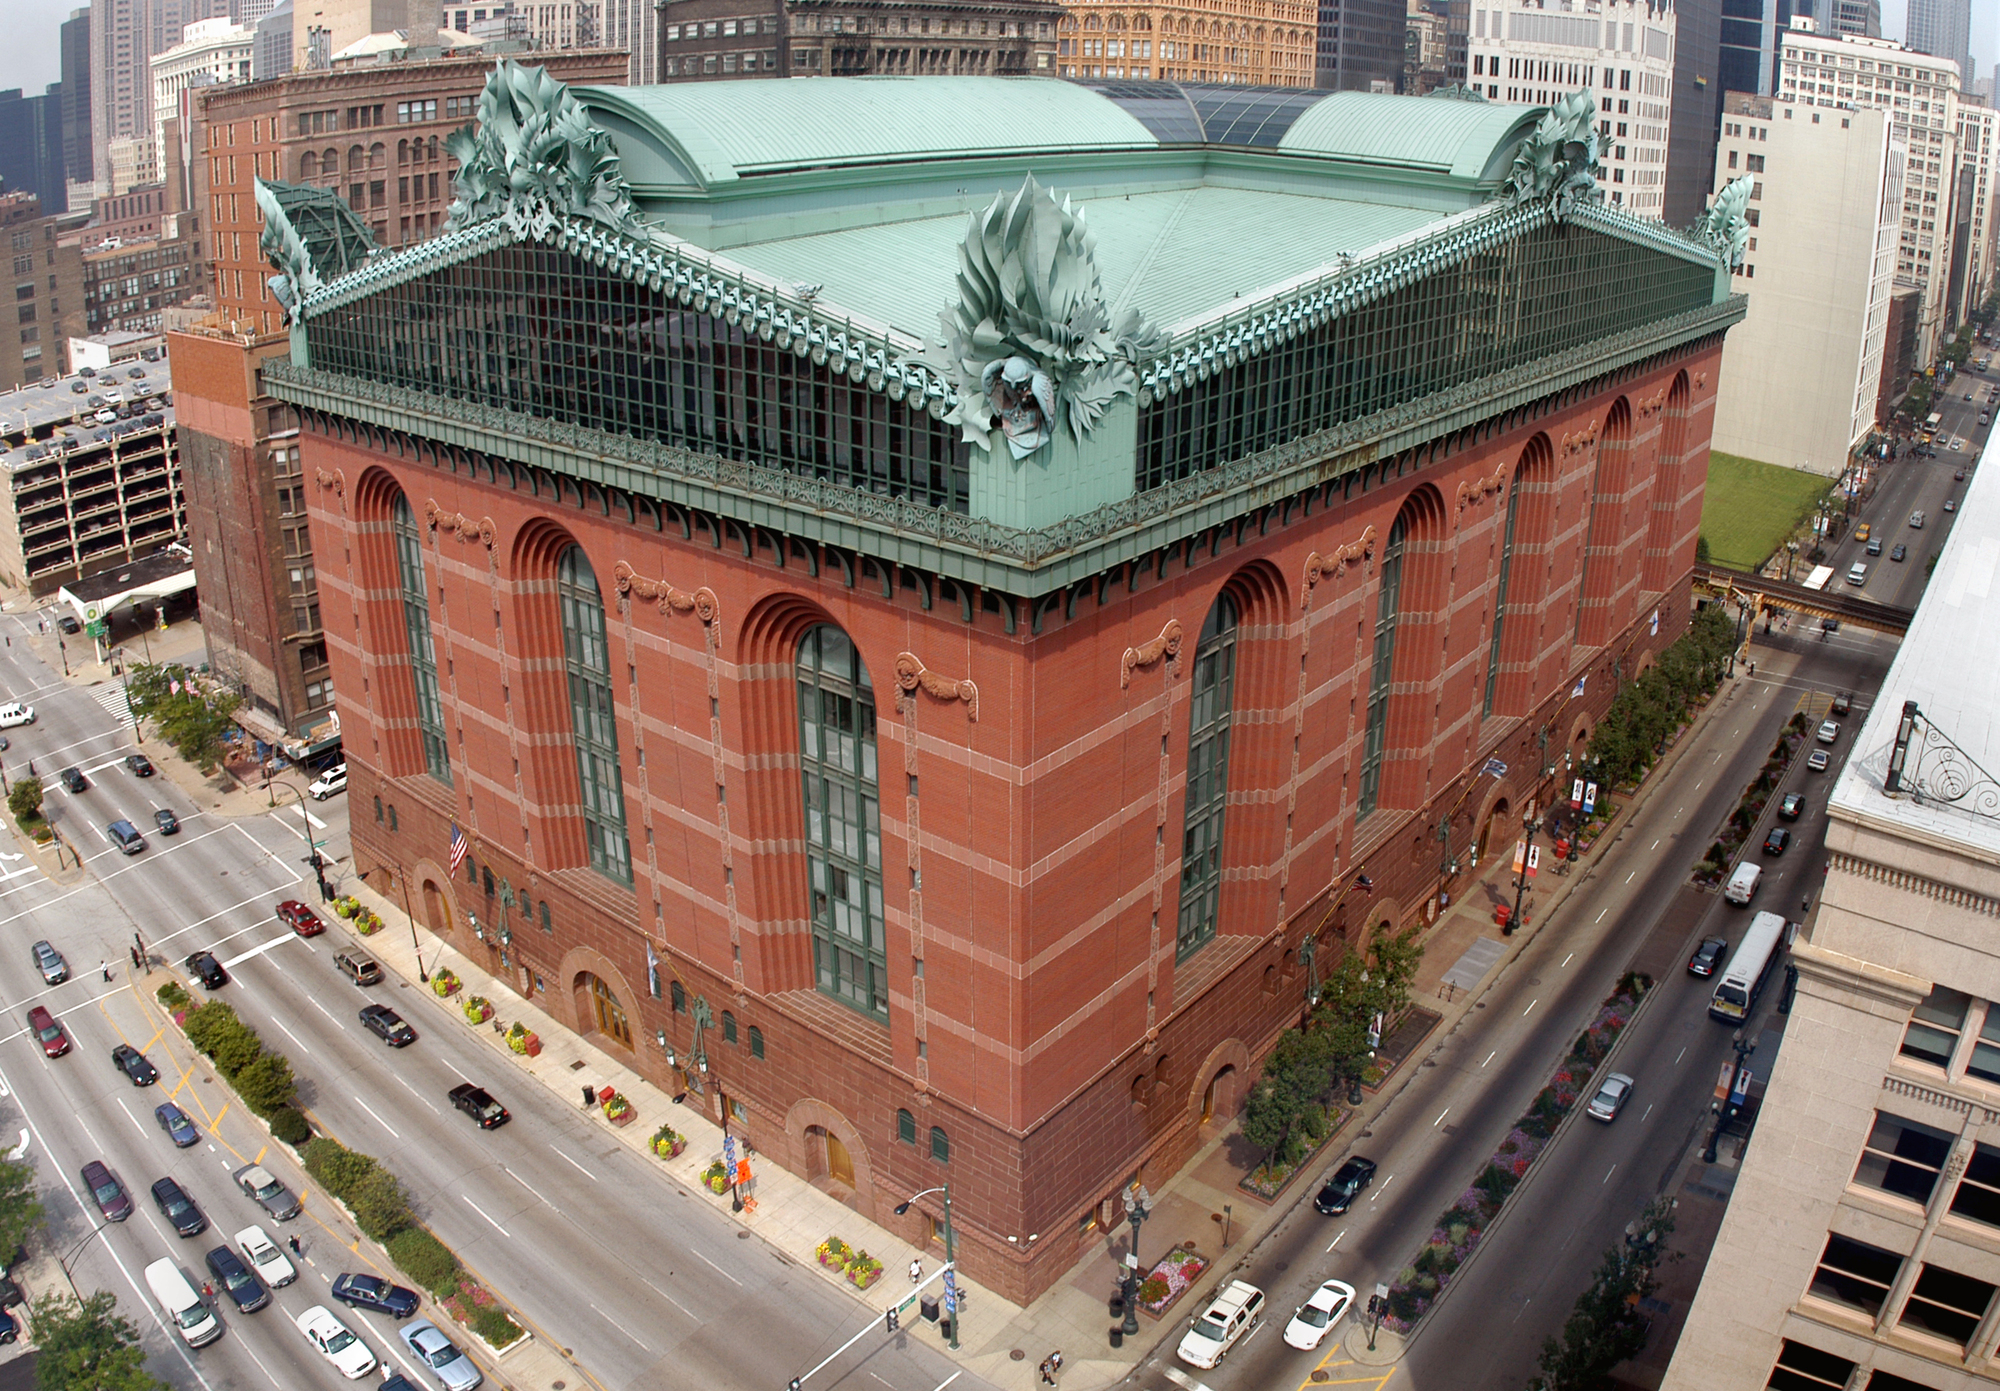 chicago's overlooked postmodern architecture | archdaily